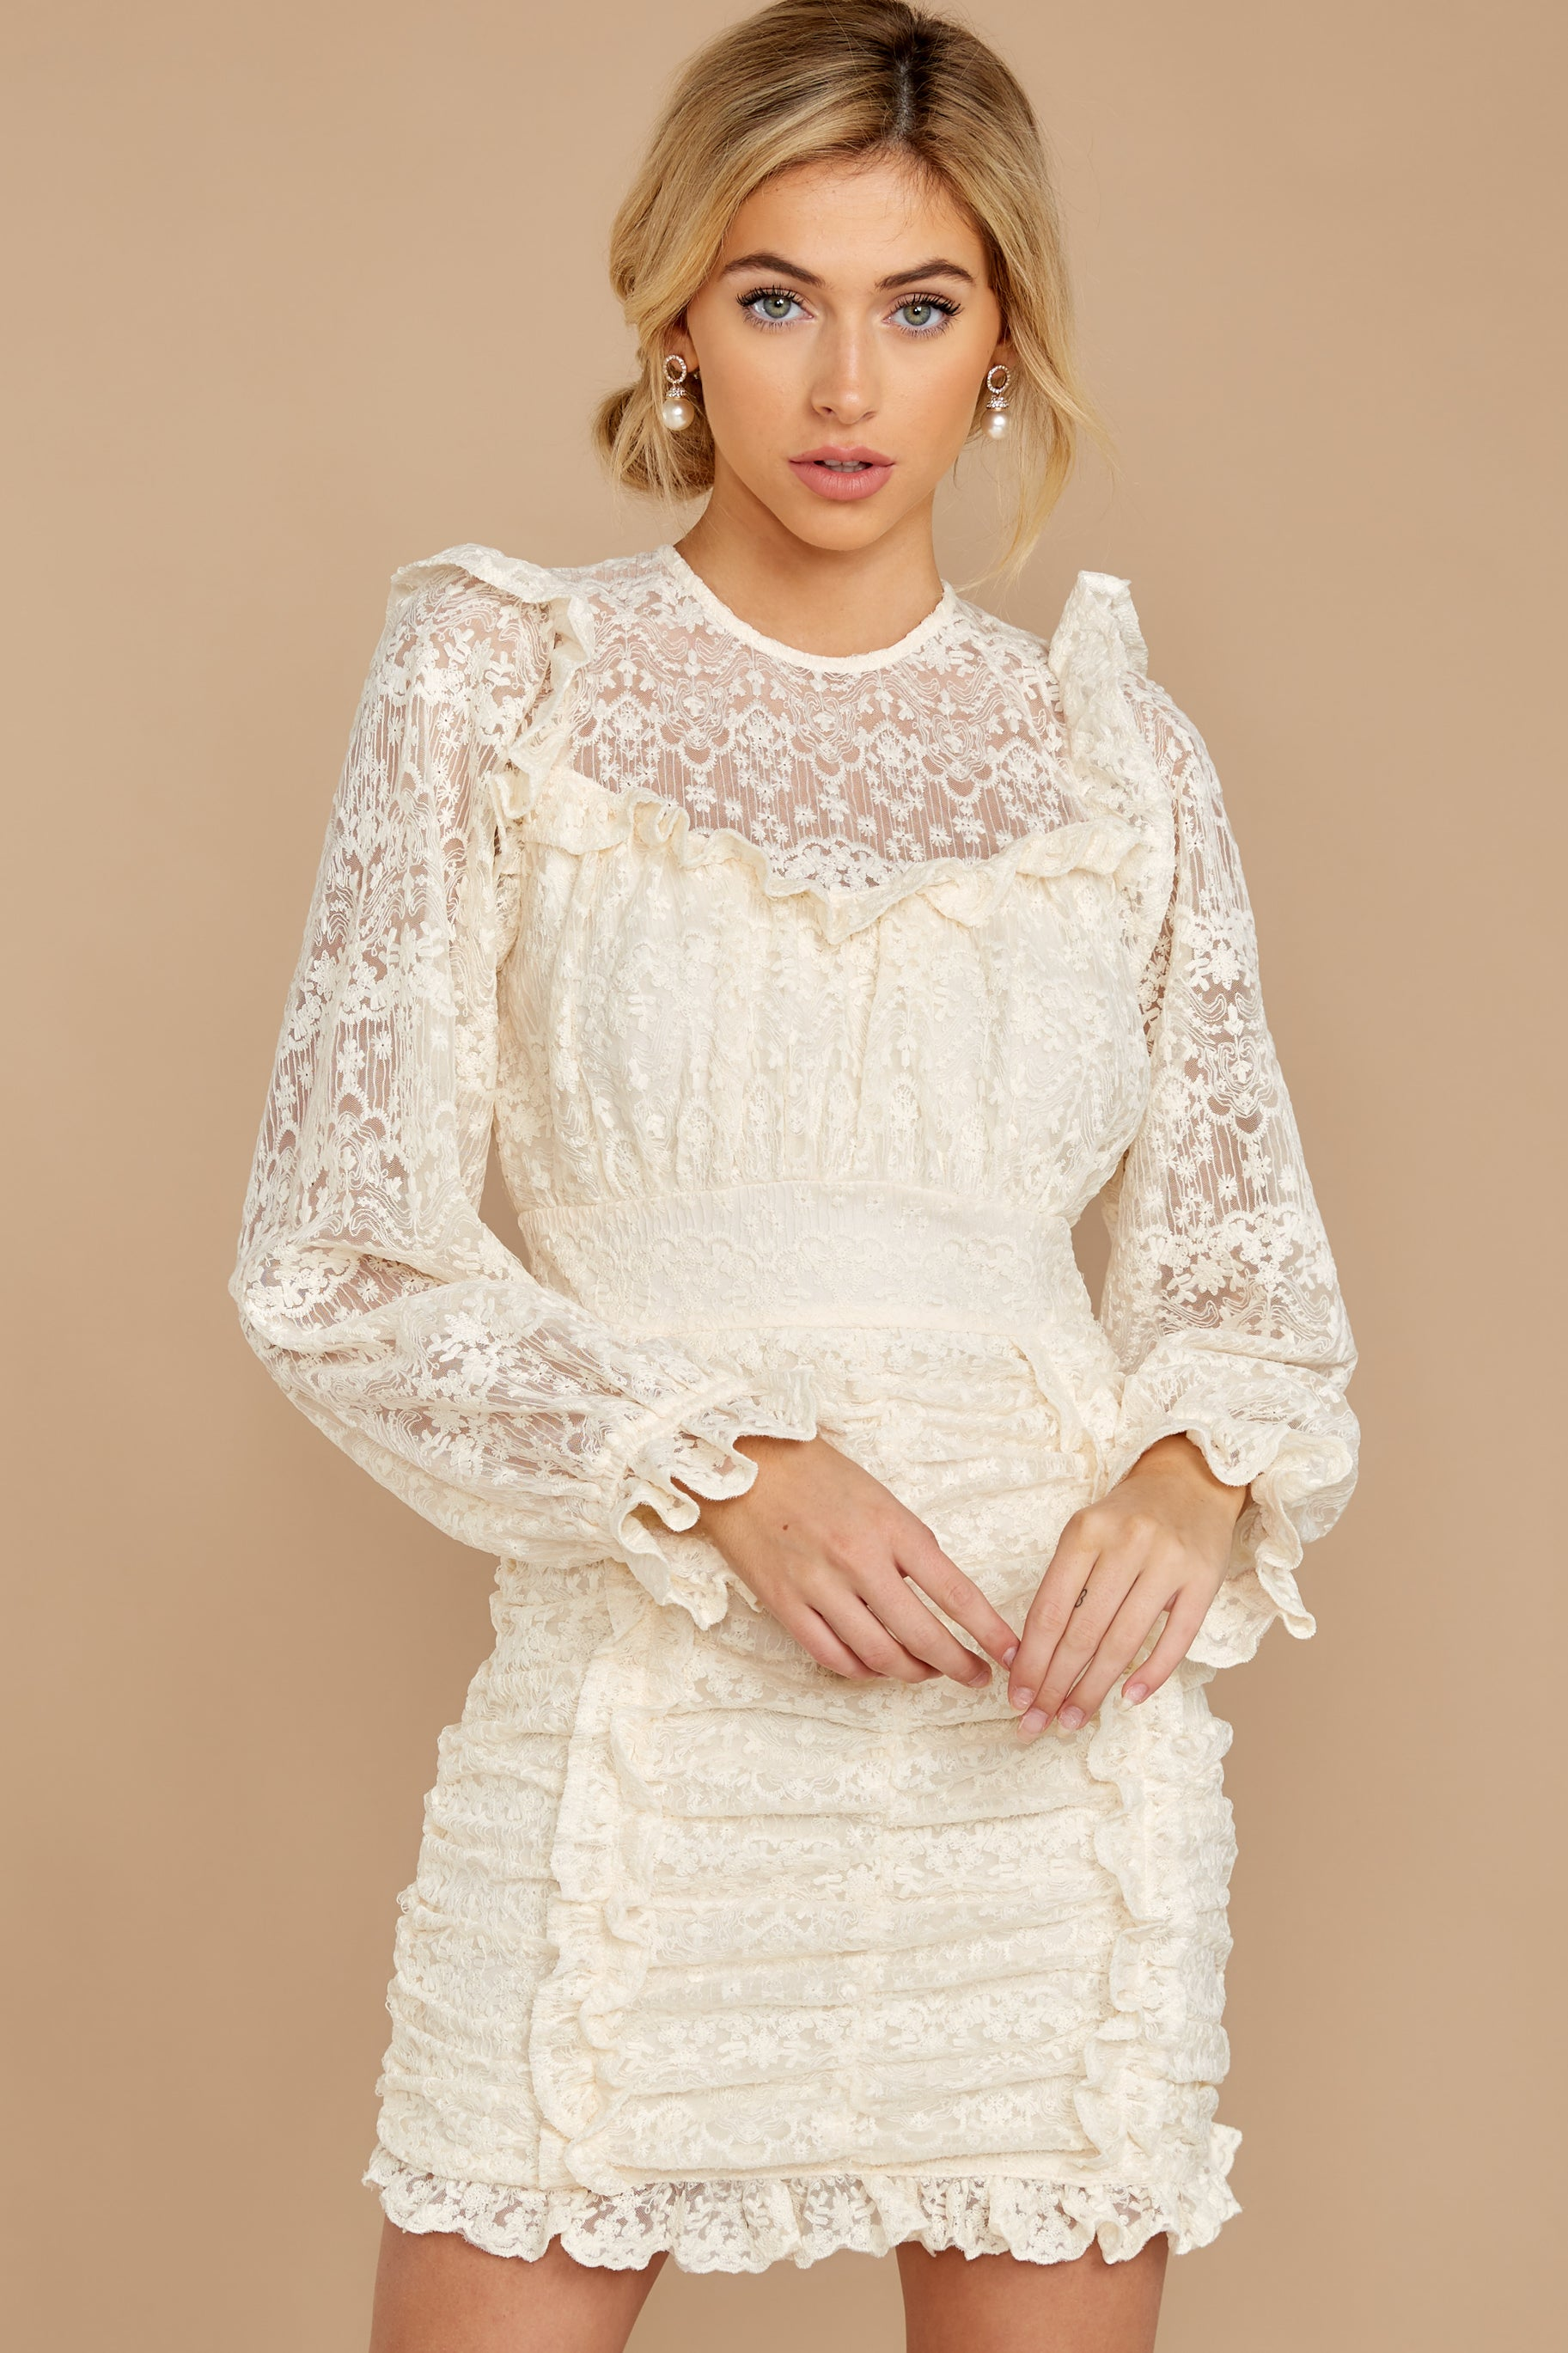 6 Talk About Love Cream Lace Dress at reddress.com